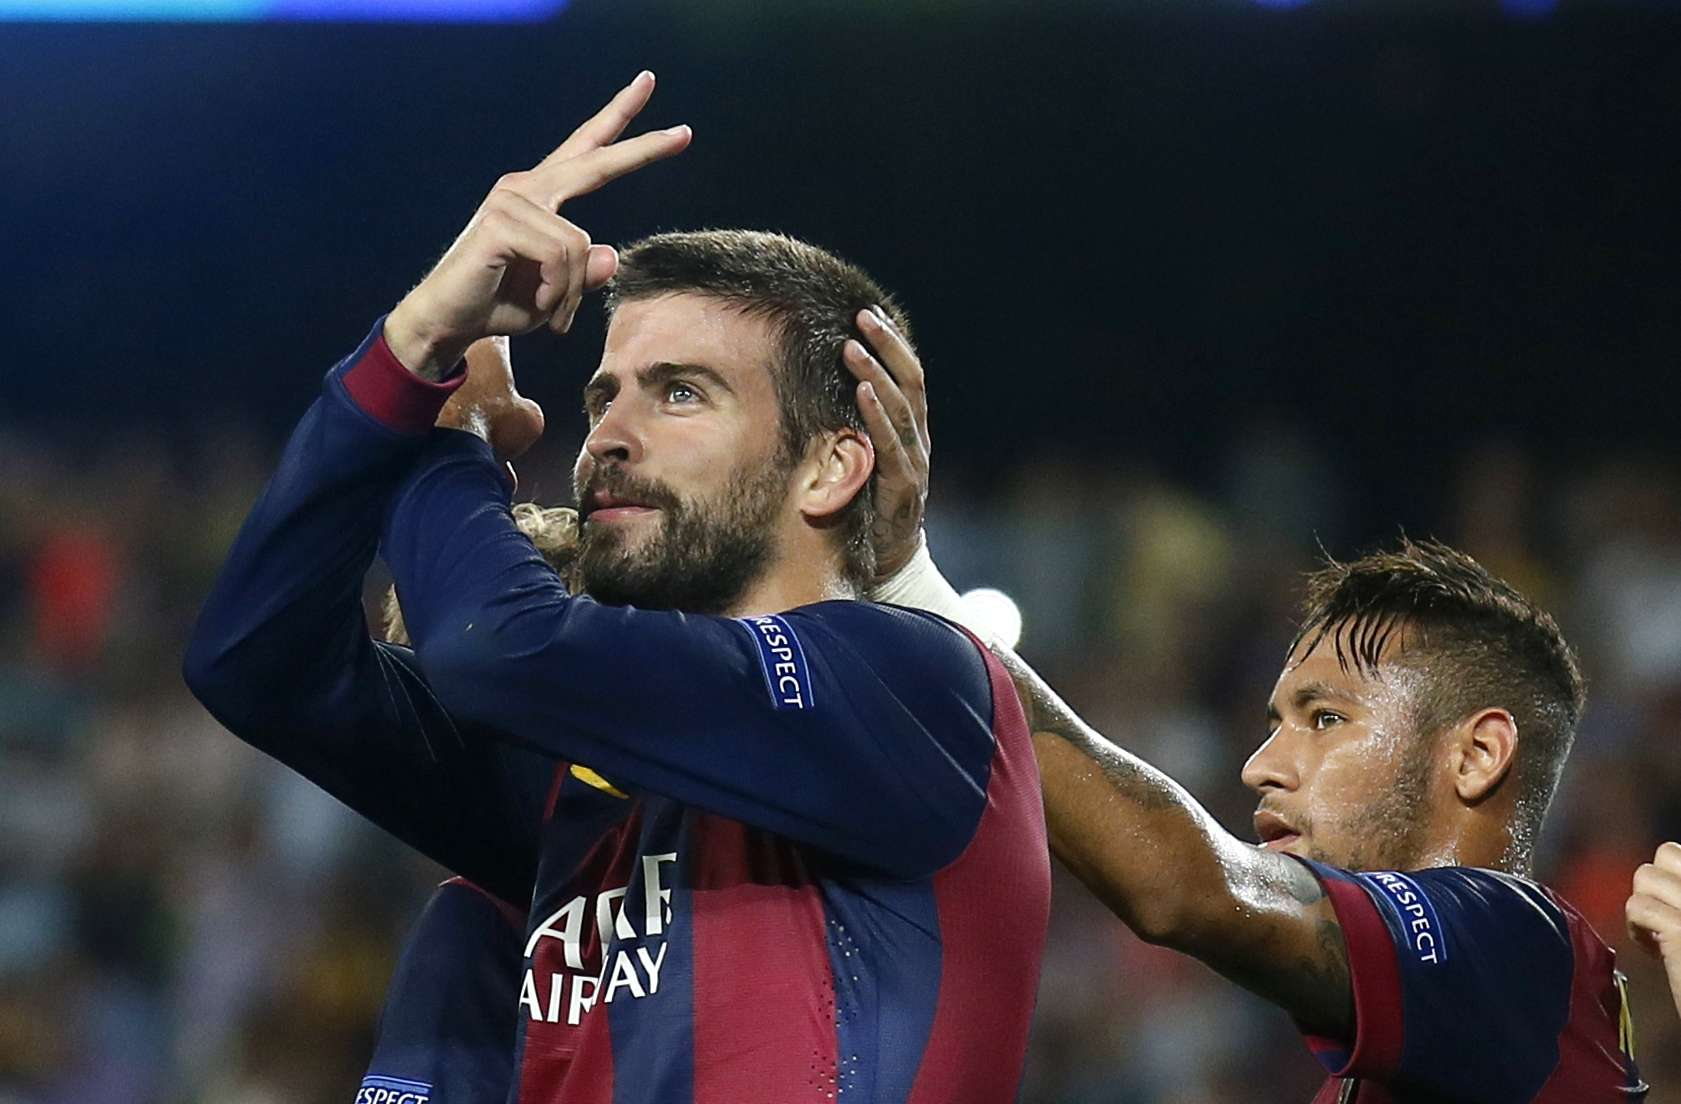 Barcelona's Gerard Pique (L) celebrates a goal next to Neymar against Apoel Nicosia during their Champions league soccer match at Camp Nou stadium in Barcelona September 17, 2014. REUTERS/Albert Gea (SPAIN - Tags: SPORT SOCCER) Foto: ALBERT GEA/REUTERS